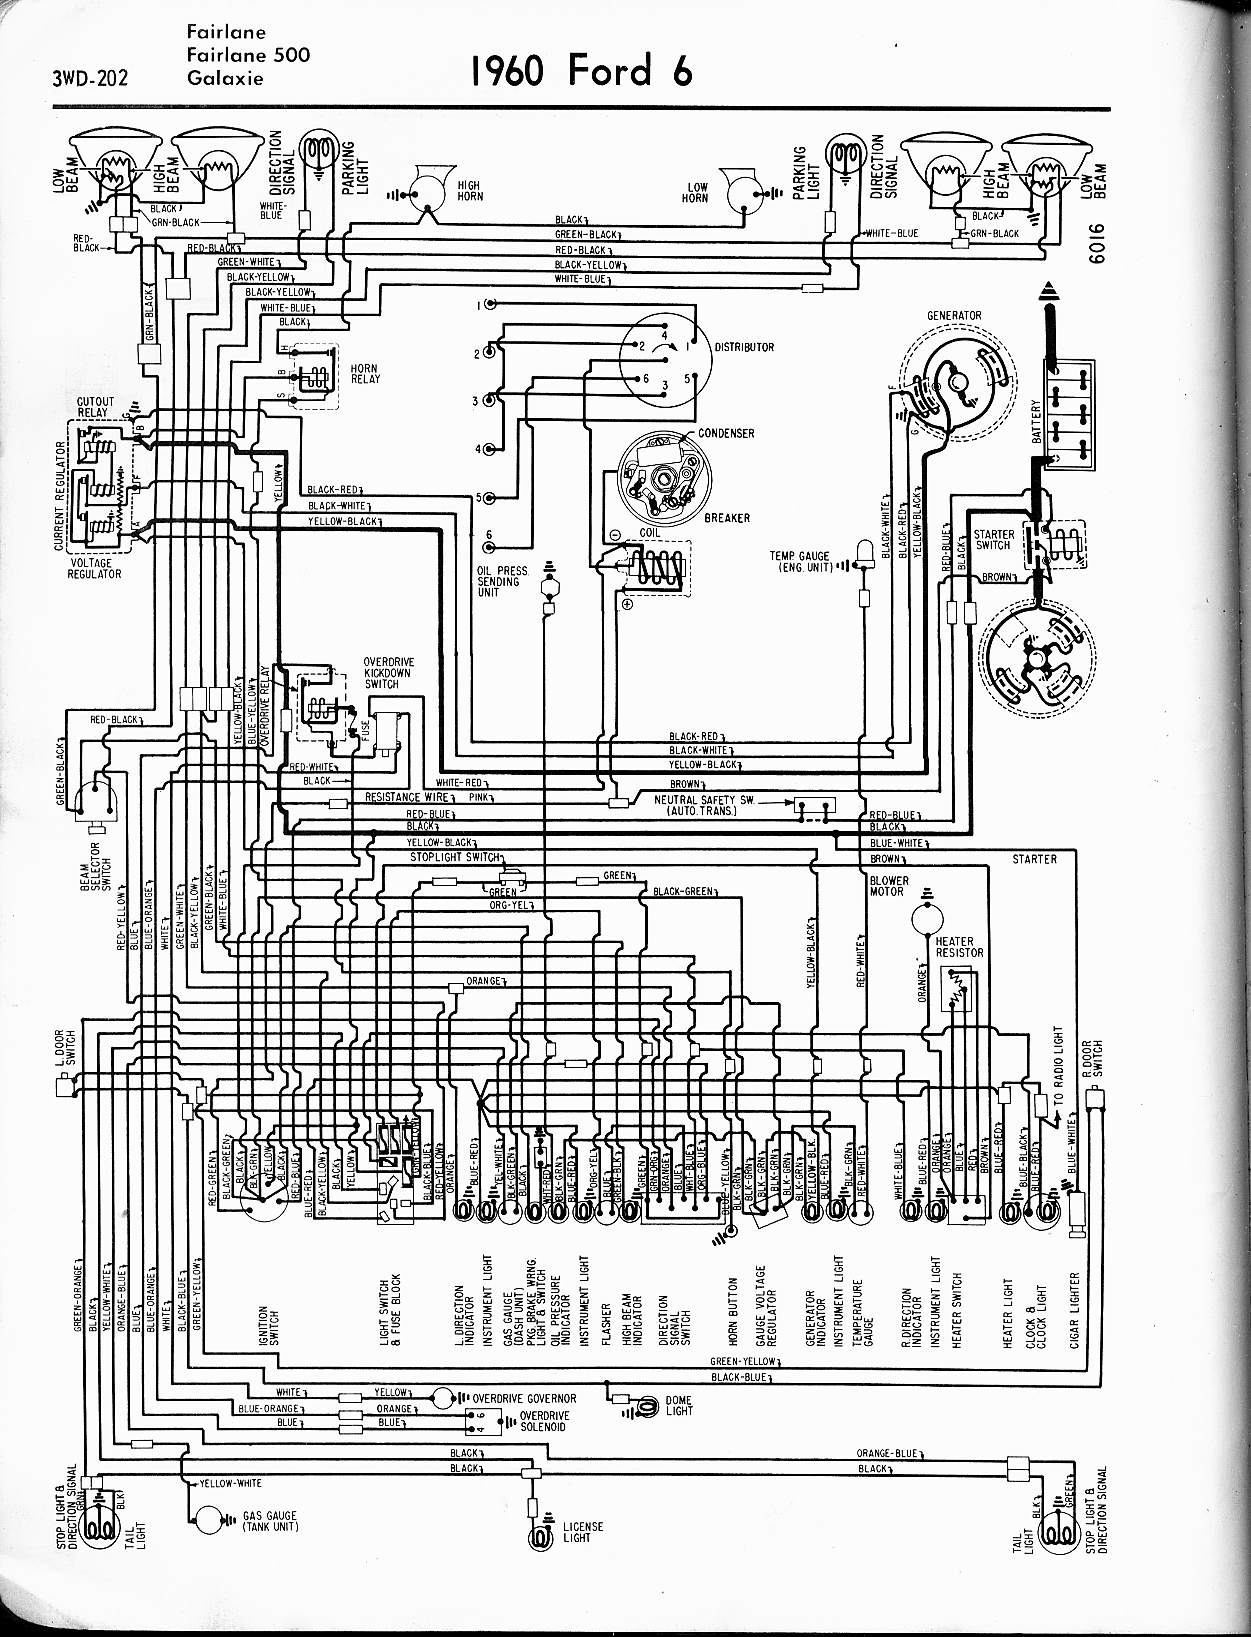 MWire5765 202 57 65 ford wiring diagrams ford truck wiring schematics at alyssarenee.co